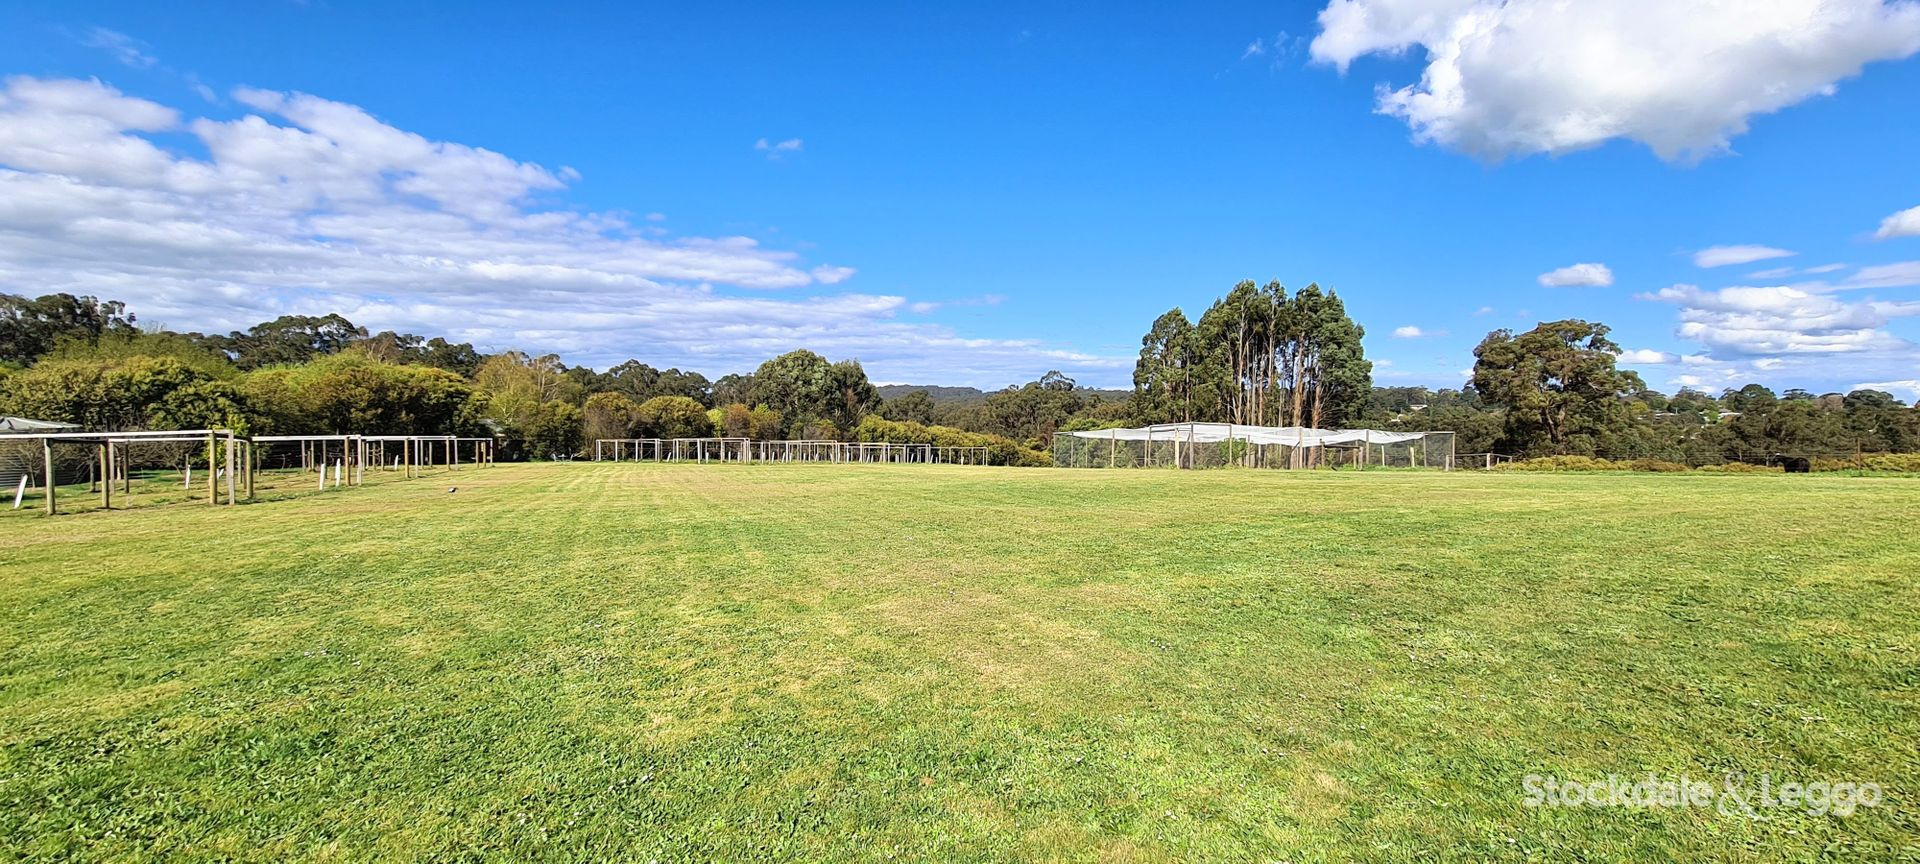 54 Wells Road, Mirboo North VIC 3871, Image 0